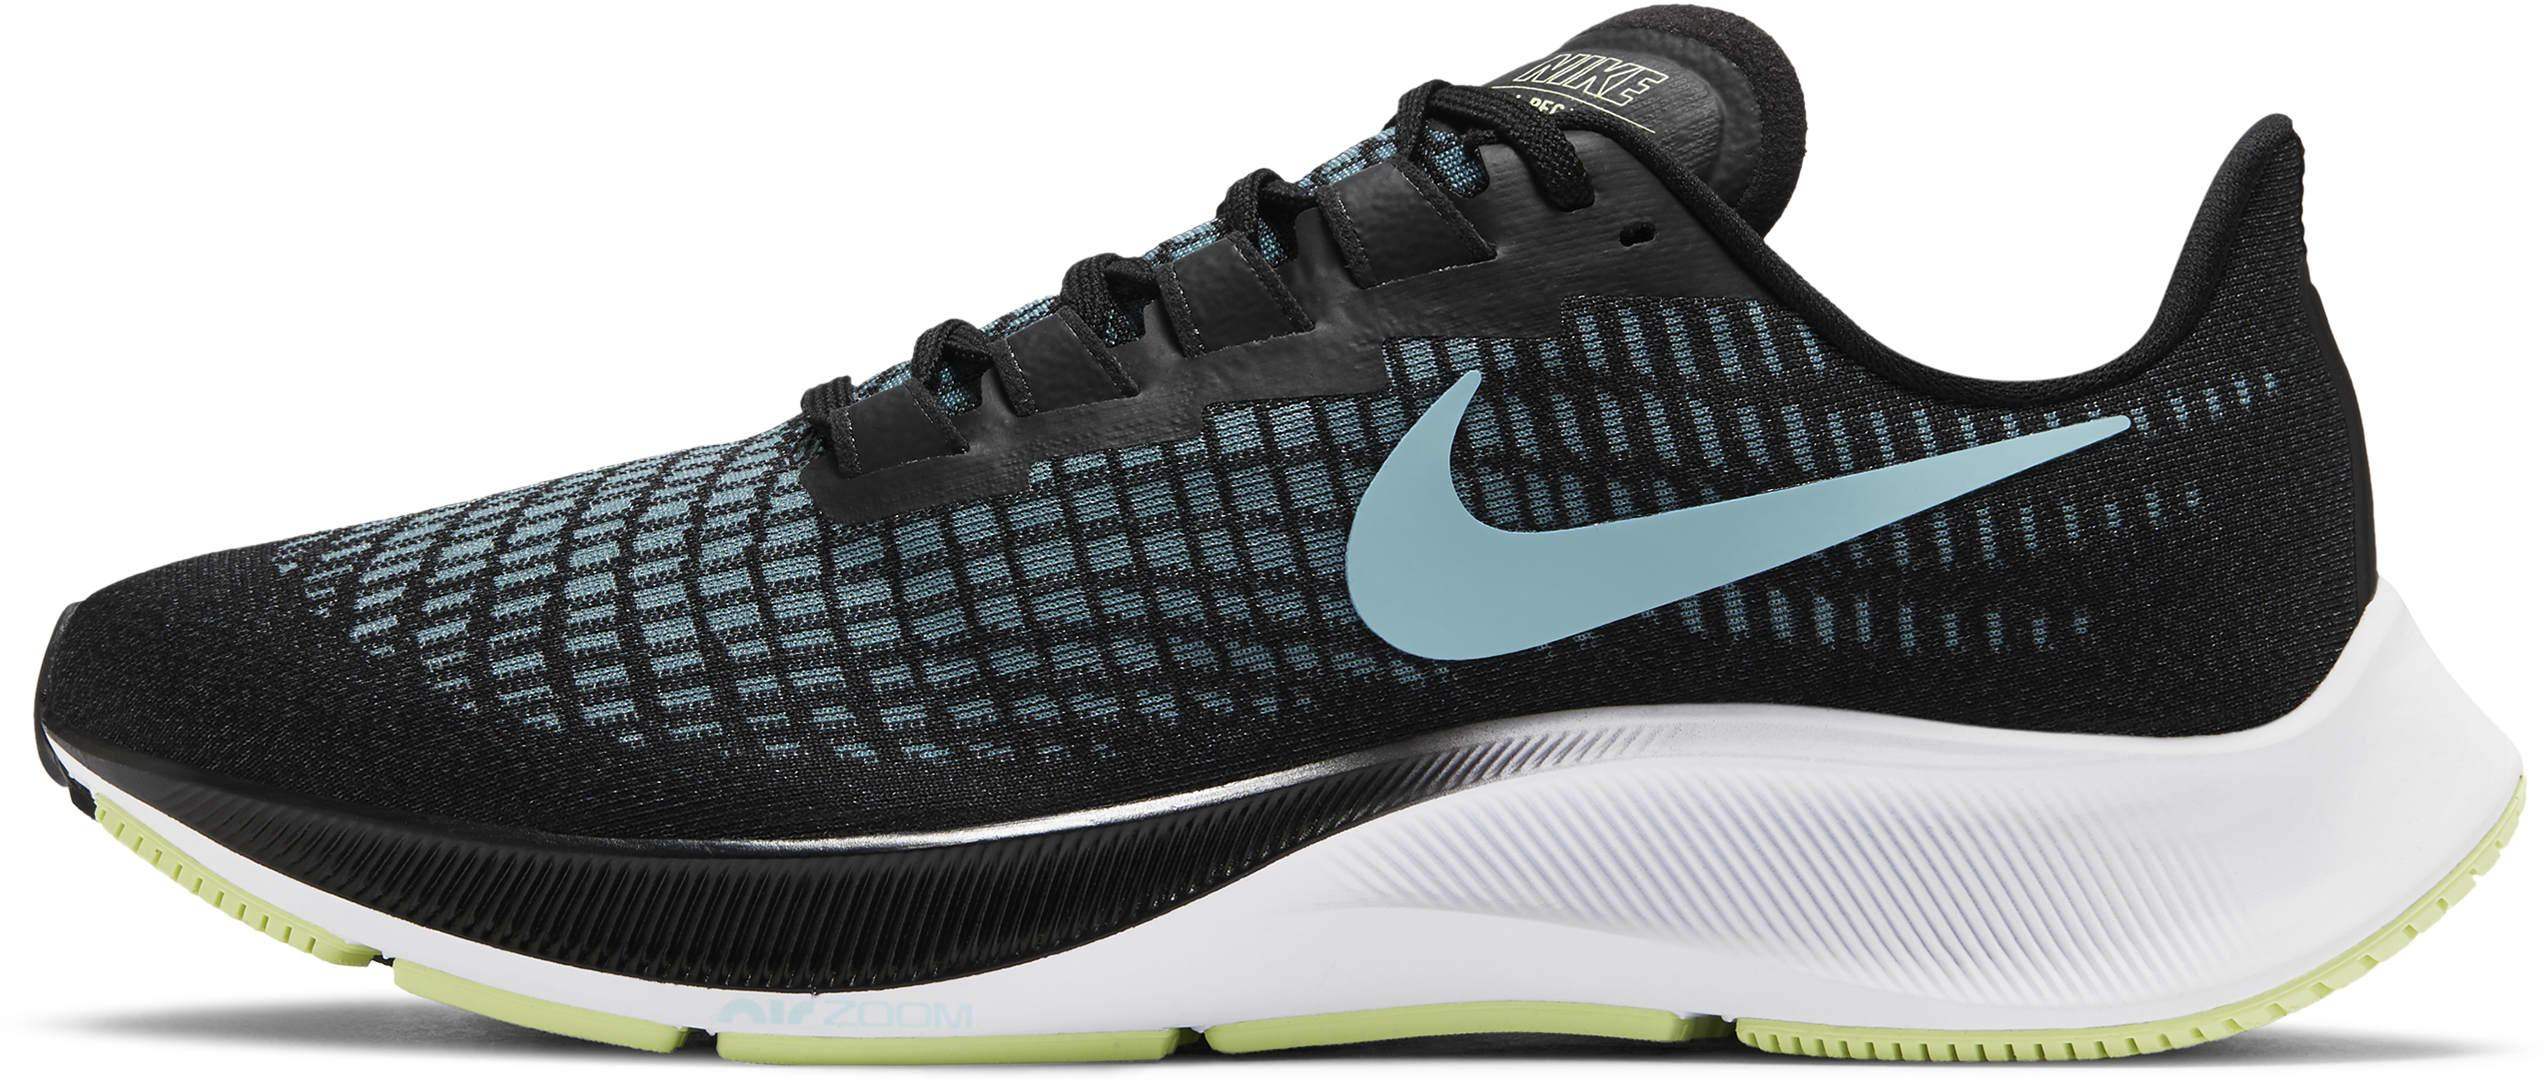 Nike Air Zoom Pegasus 37 Black/Barely Volt/White/Glacier Ice